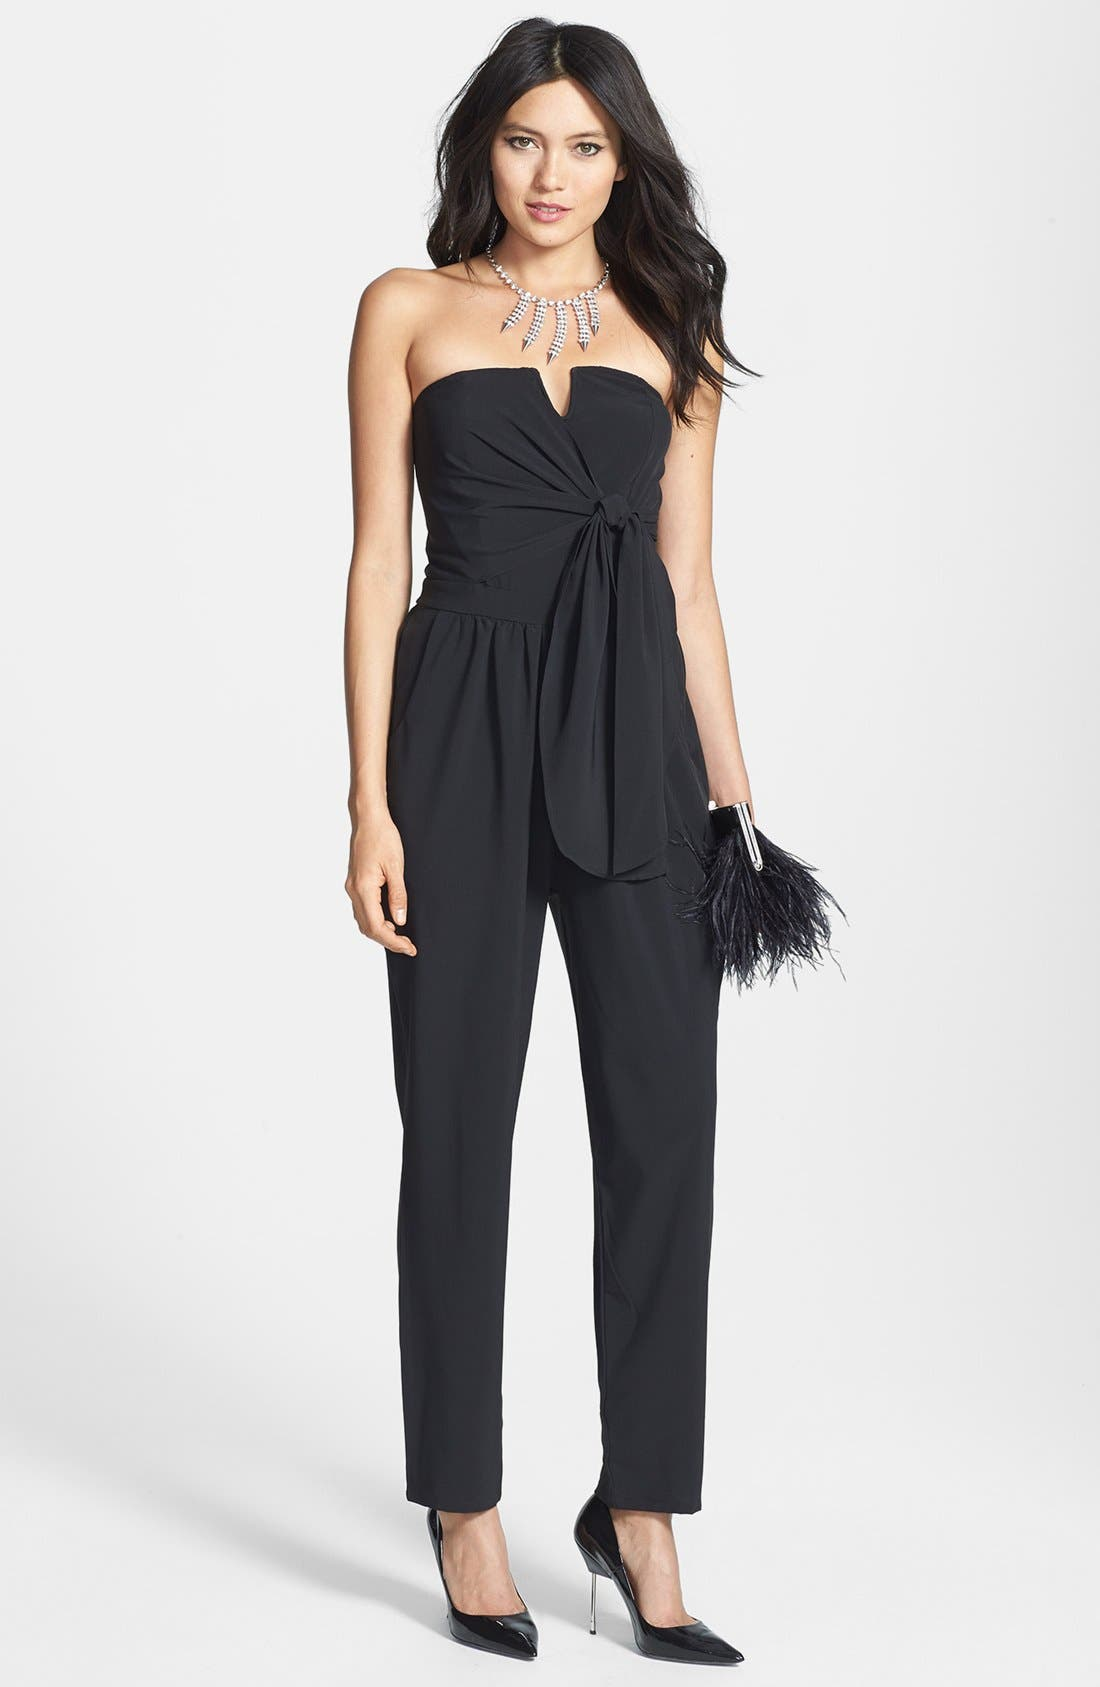 Alternate Image 1 Selected - Rules of Etiquette Tie Front Strapless Jumpsuit